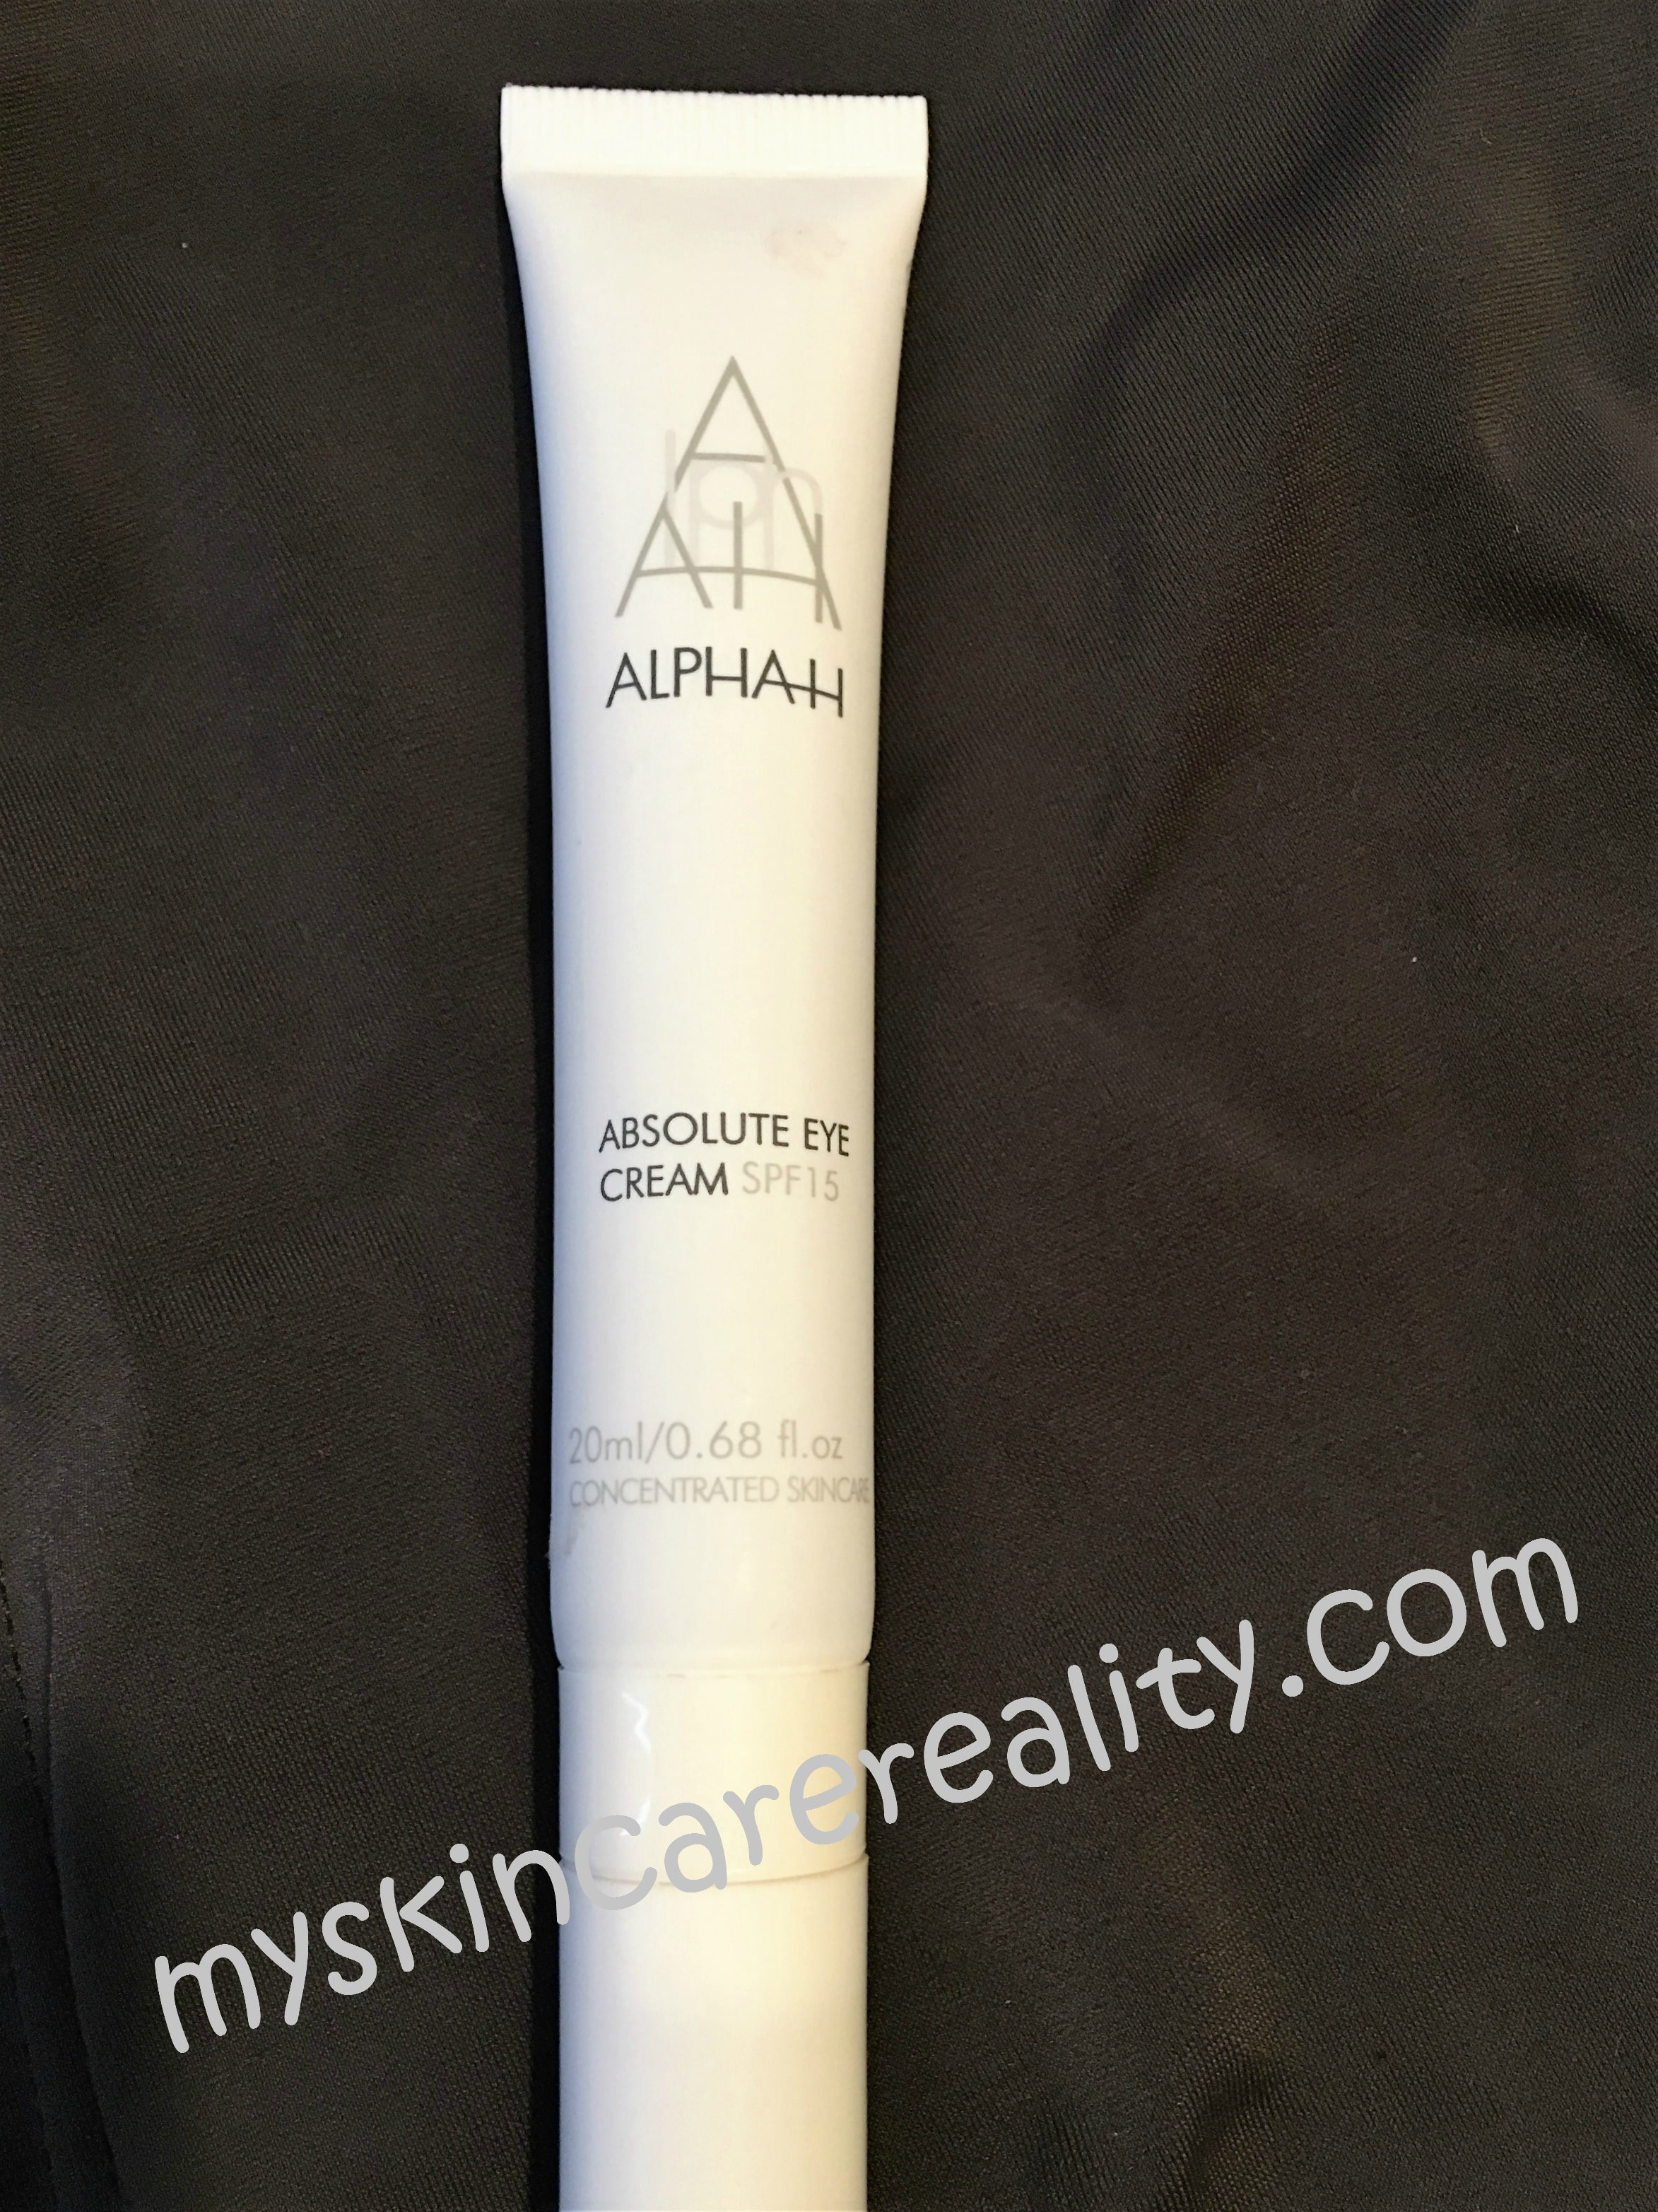 Alpha H Absolute Eye Cream SPF 15 | Skincare Review | My Skincare Reality